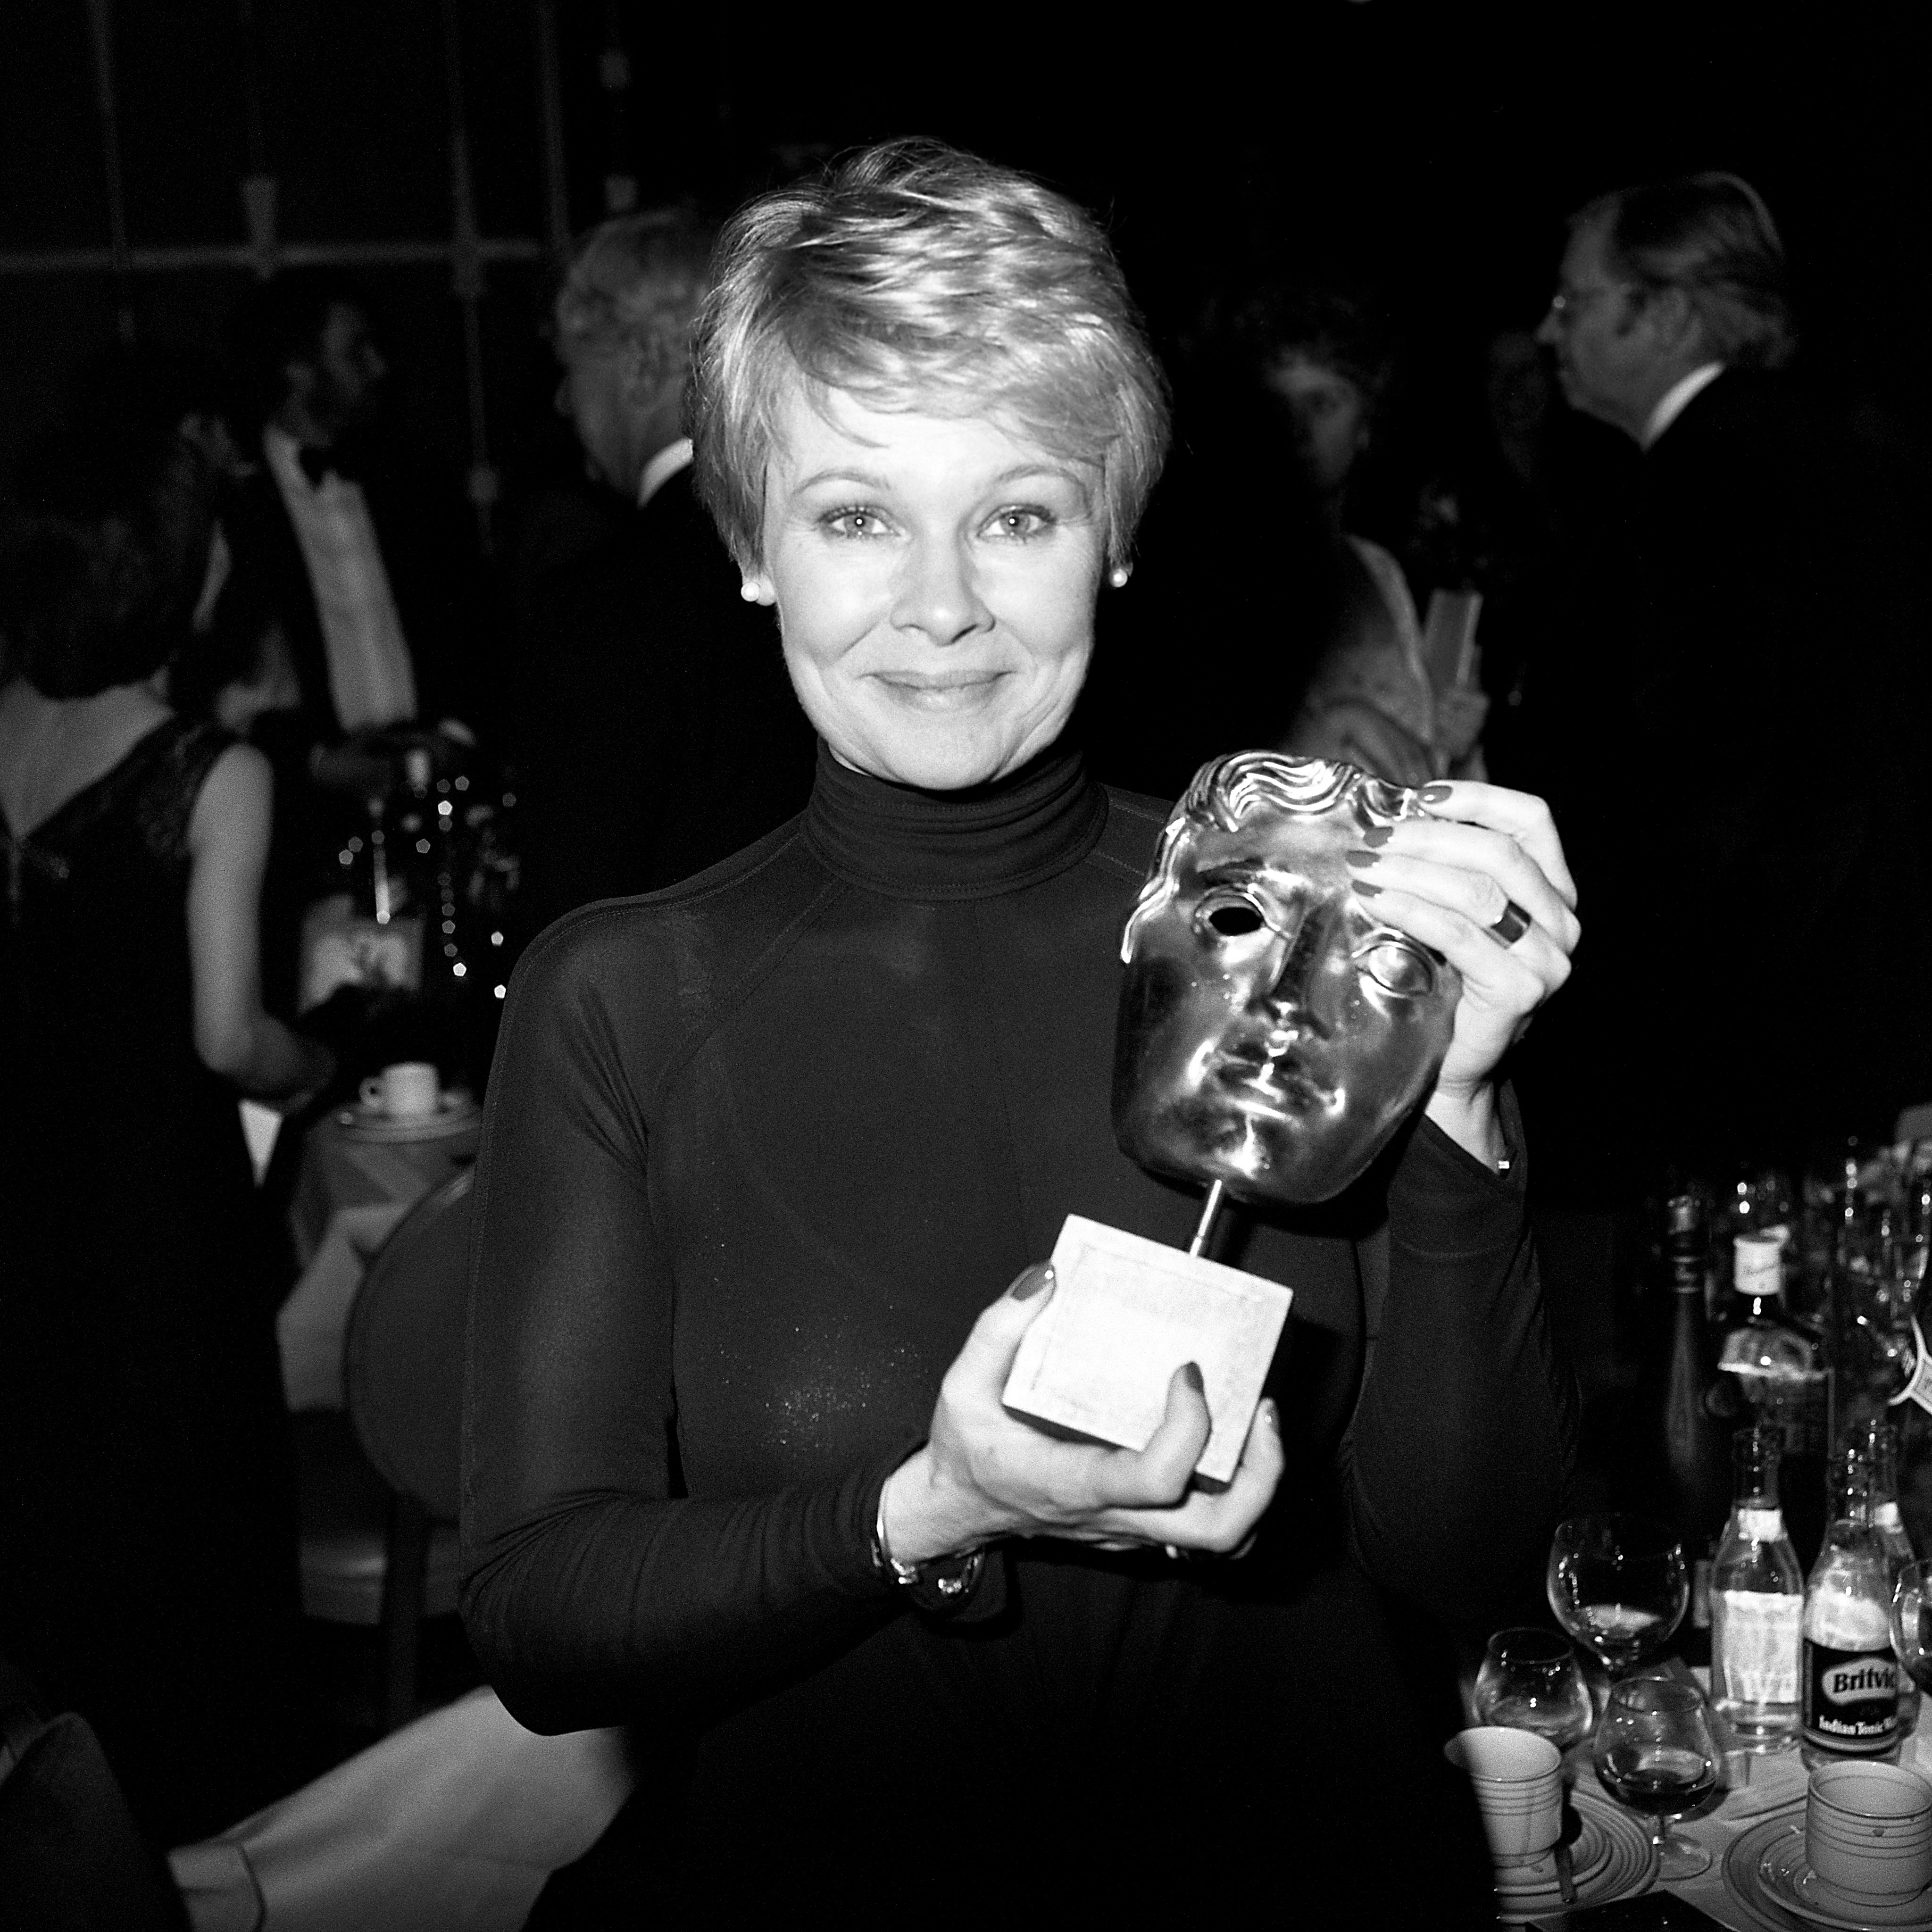 Judi Dench in 1082, with her Bafta TV award for Best Actress for 'A Fine Romance', at the British Academy of Film and TV Arts Awards